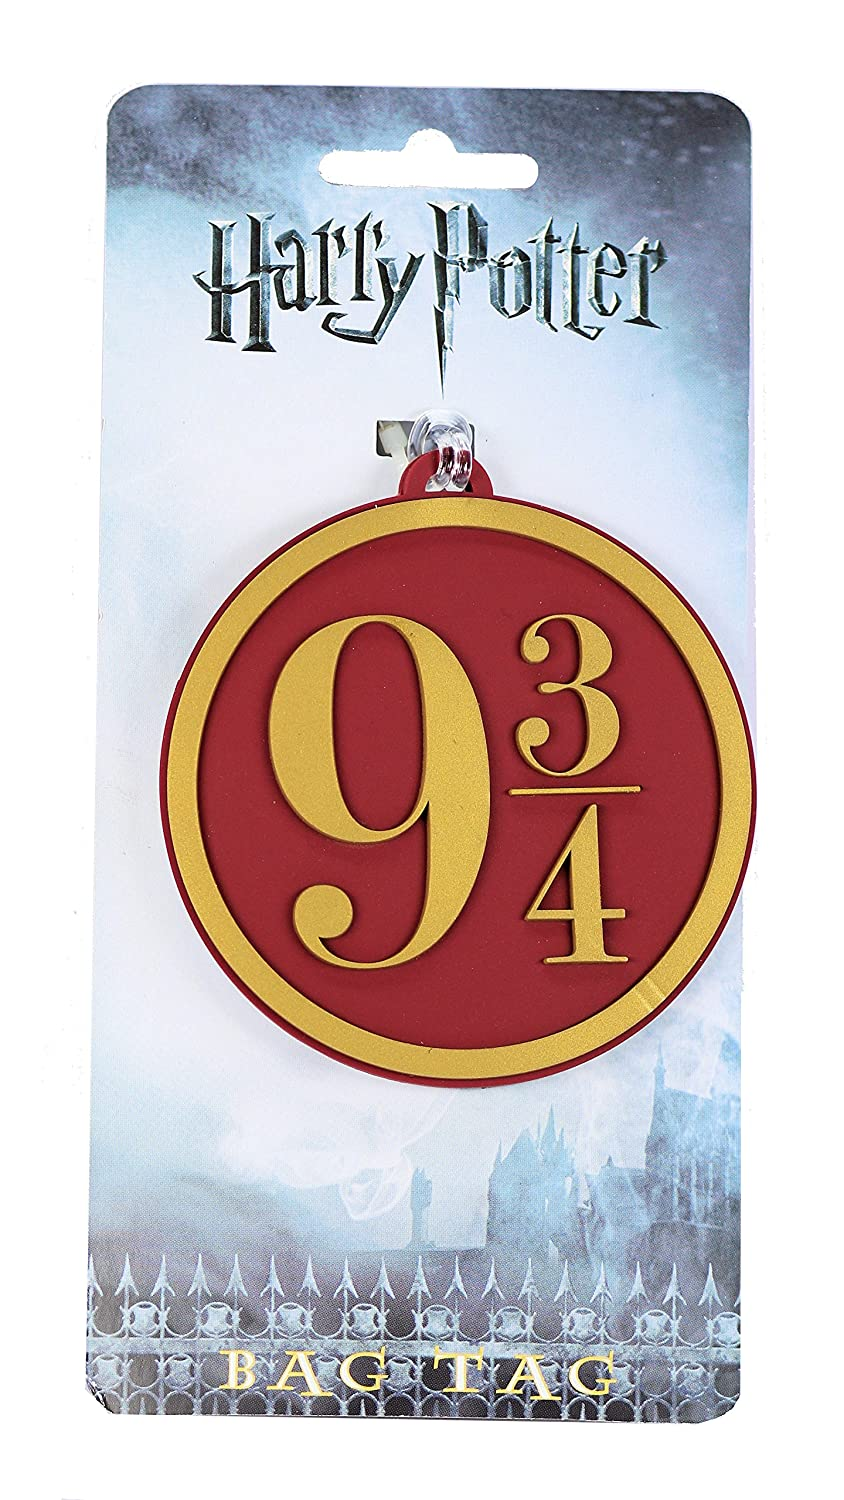 Harry Potter Hogwarts Express 9 3/4 Heavy PVC Luggage Bag Tag by Harry Potter O158520